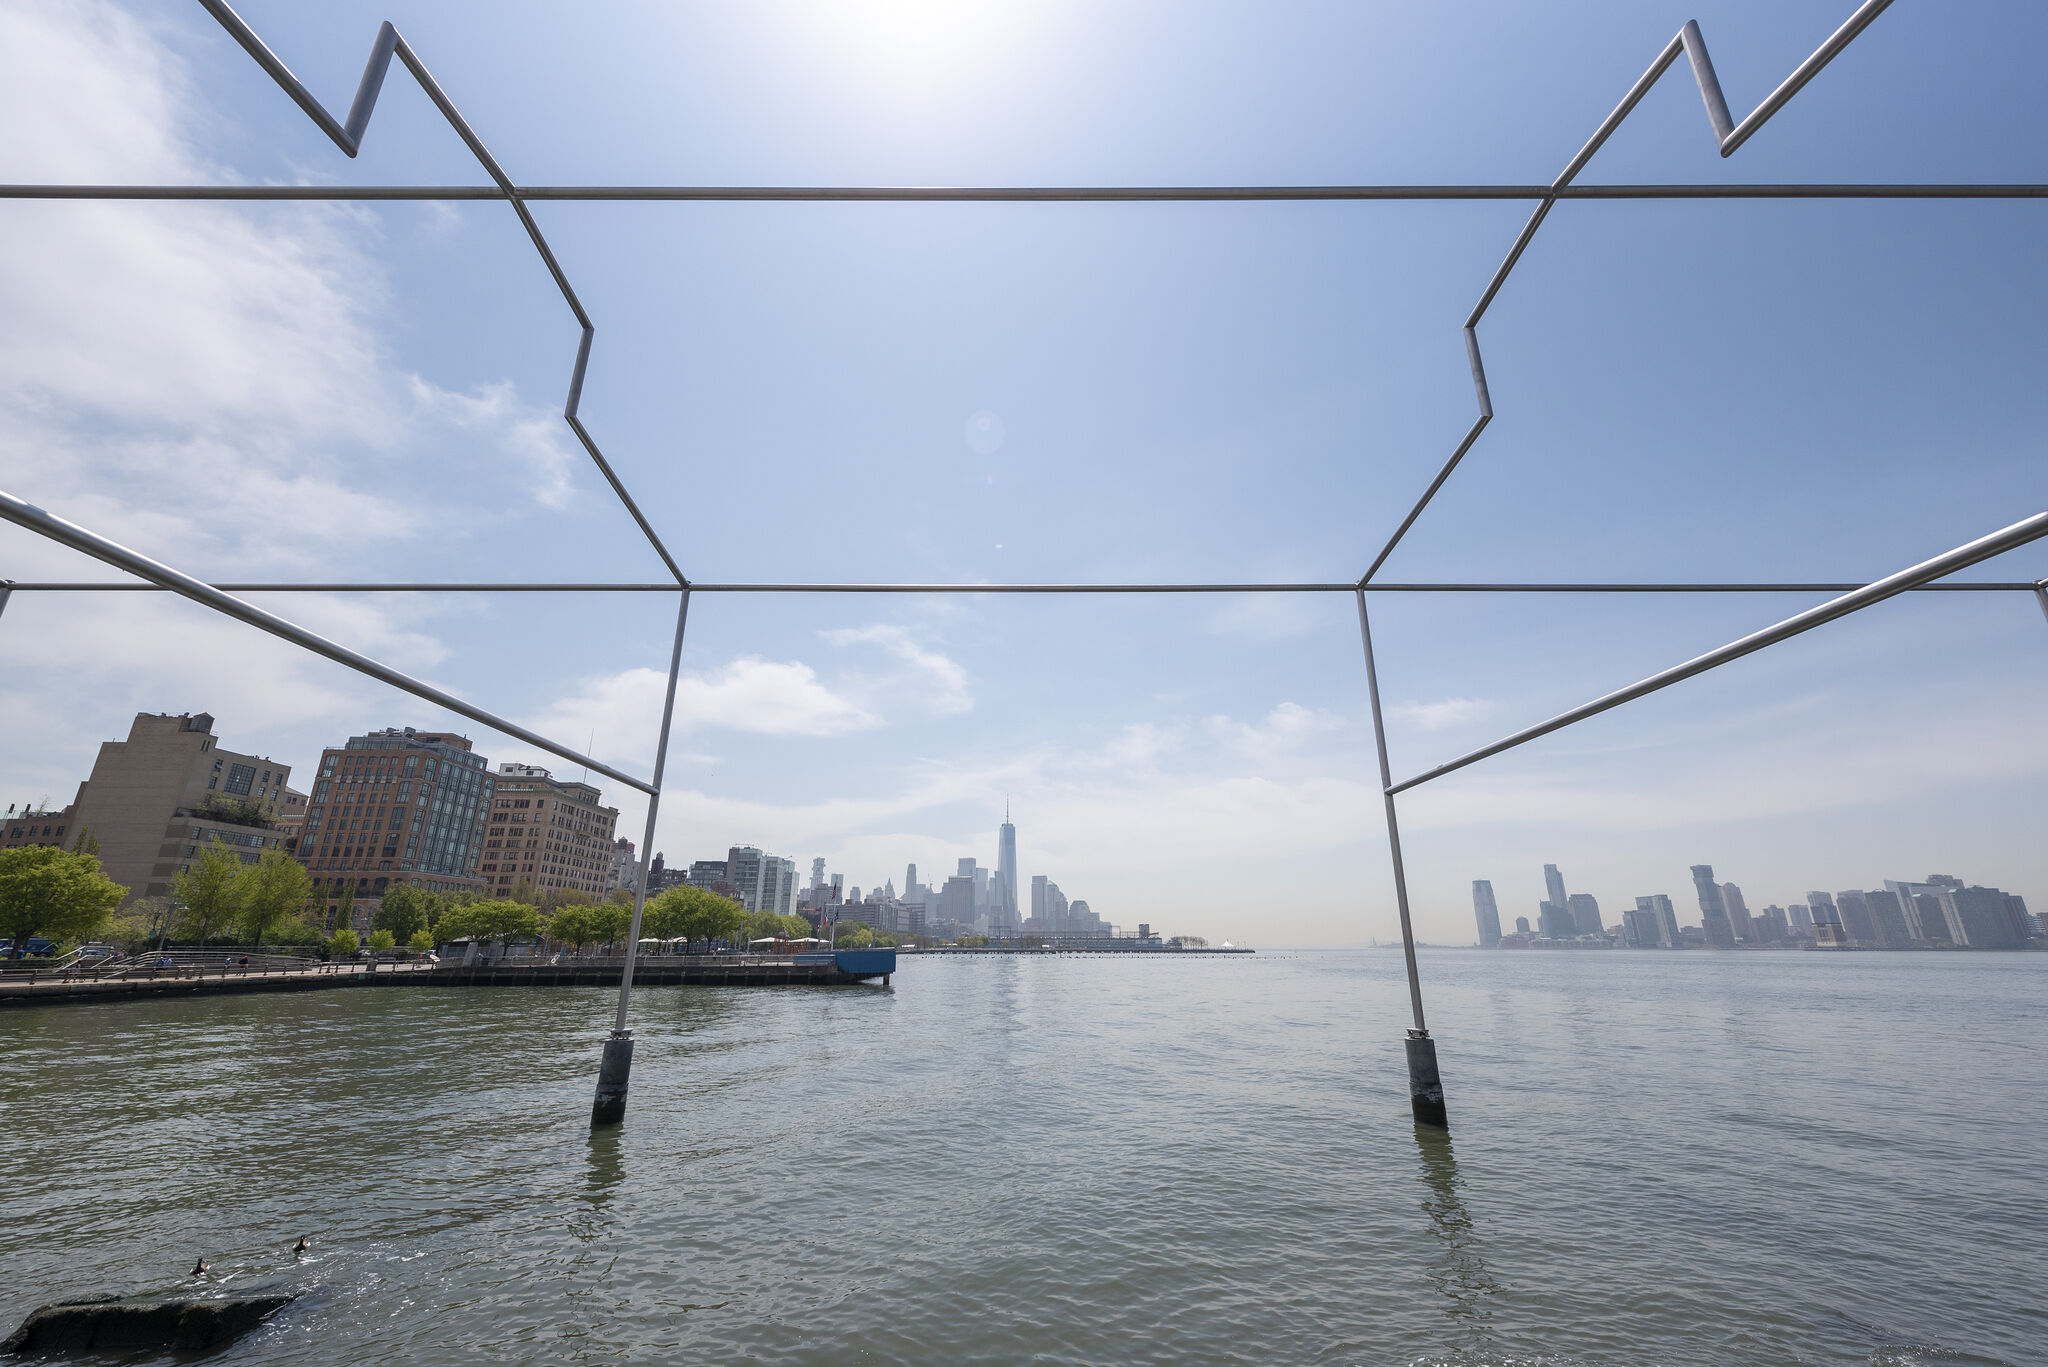 Close-up view of Day's End metal sculpture, with the steel beams framing the New York and New Jersey skylines against the horizon of the Hudson River.